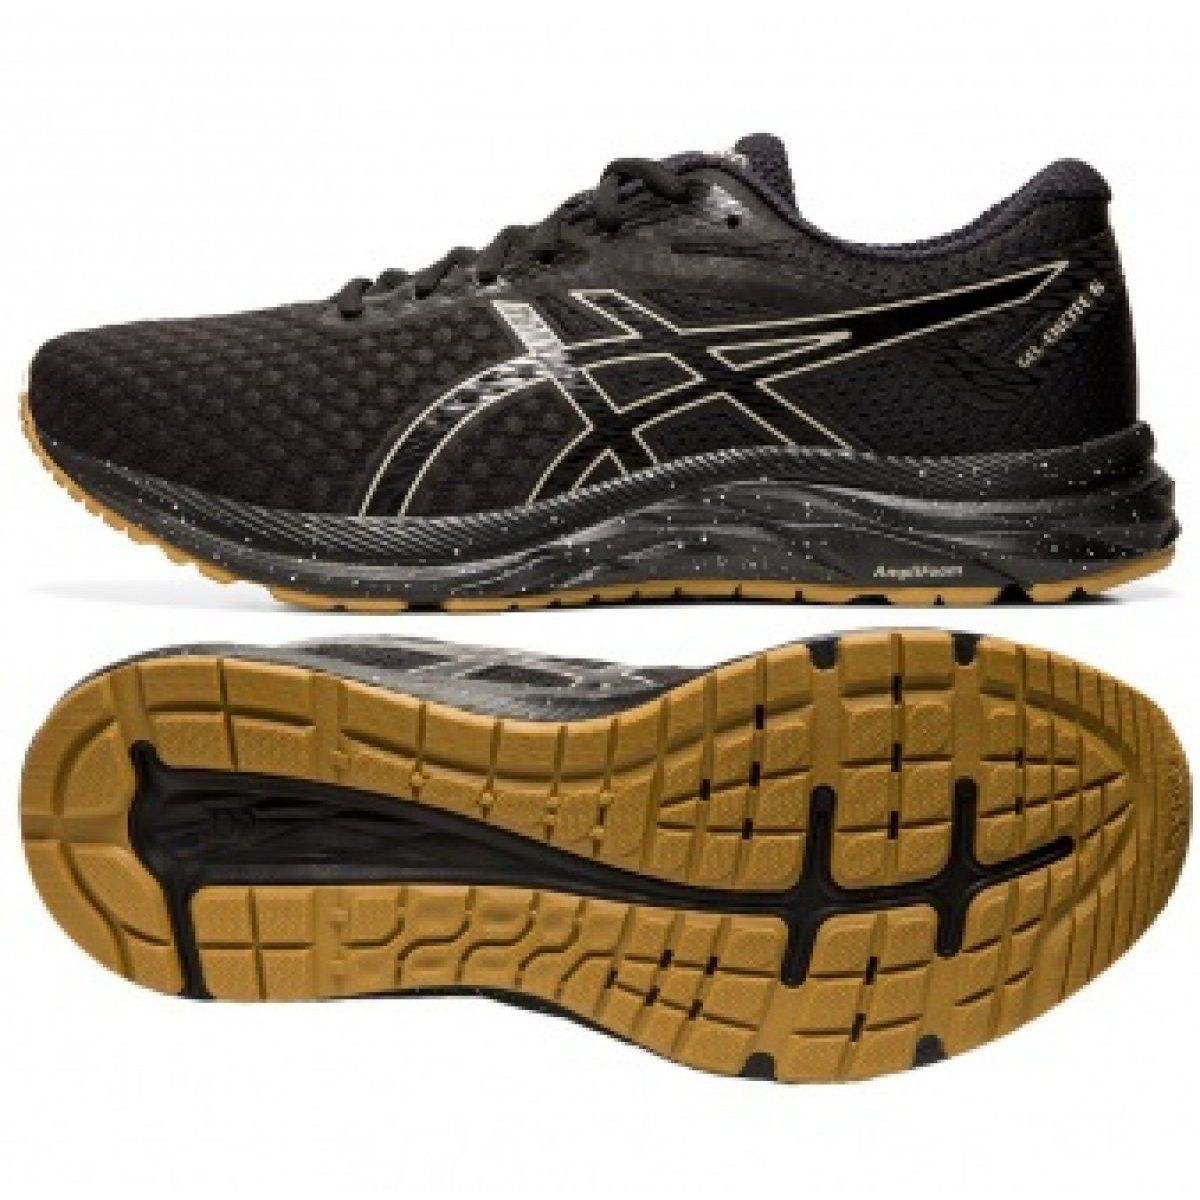 Asics Gel Excite 6 Winterized M 1011A626 001 running shoes